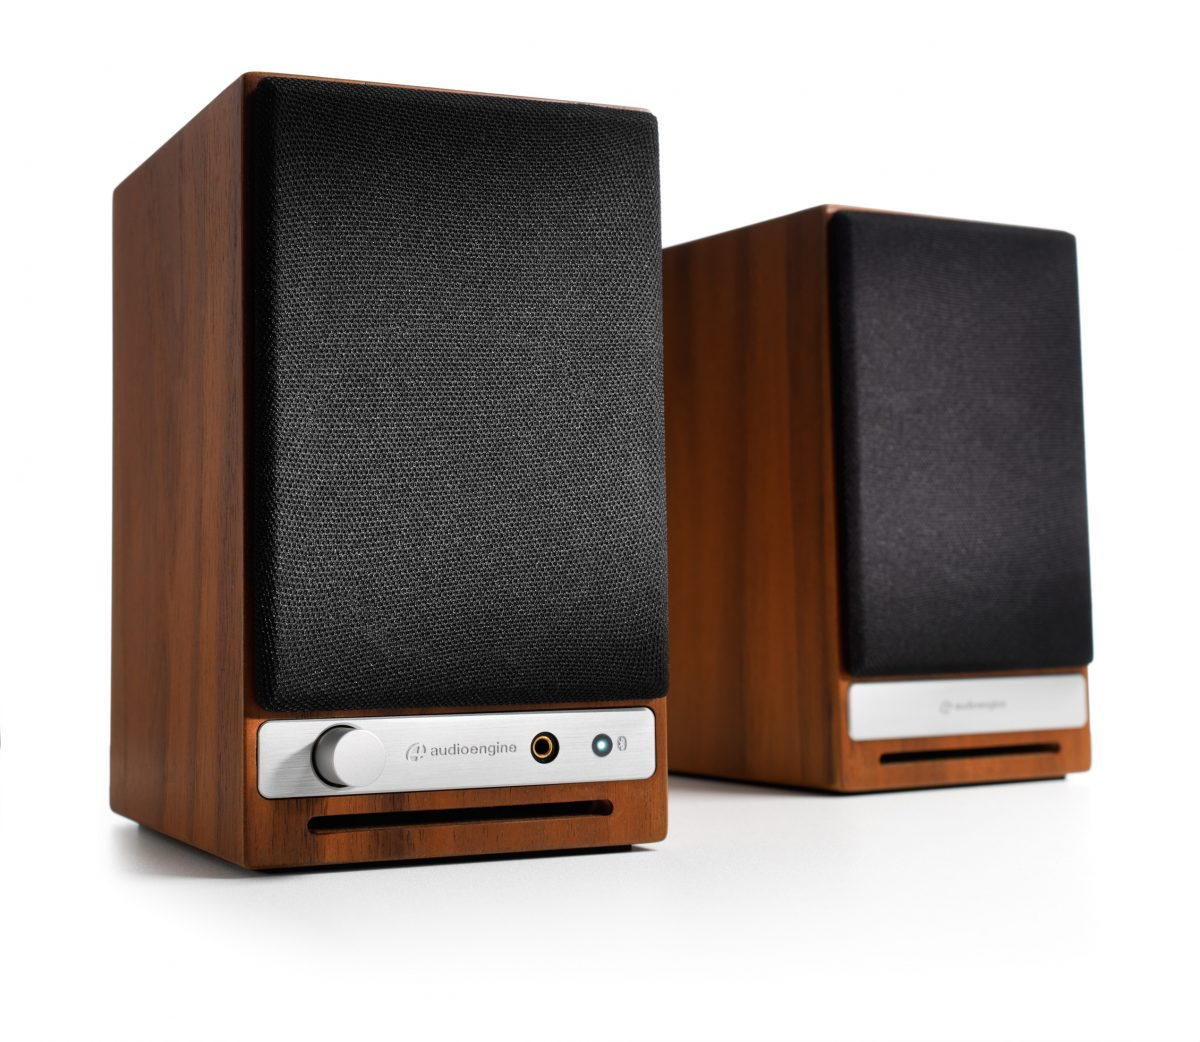 HD3 Wireless Speakers / Audioengine